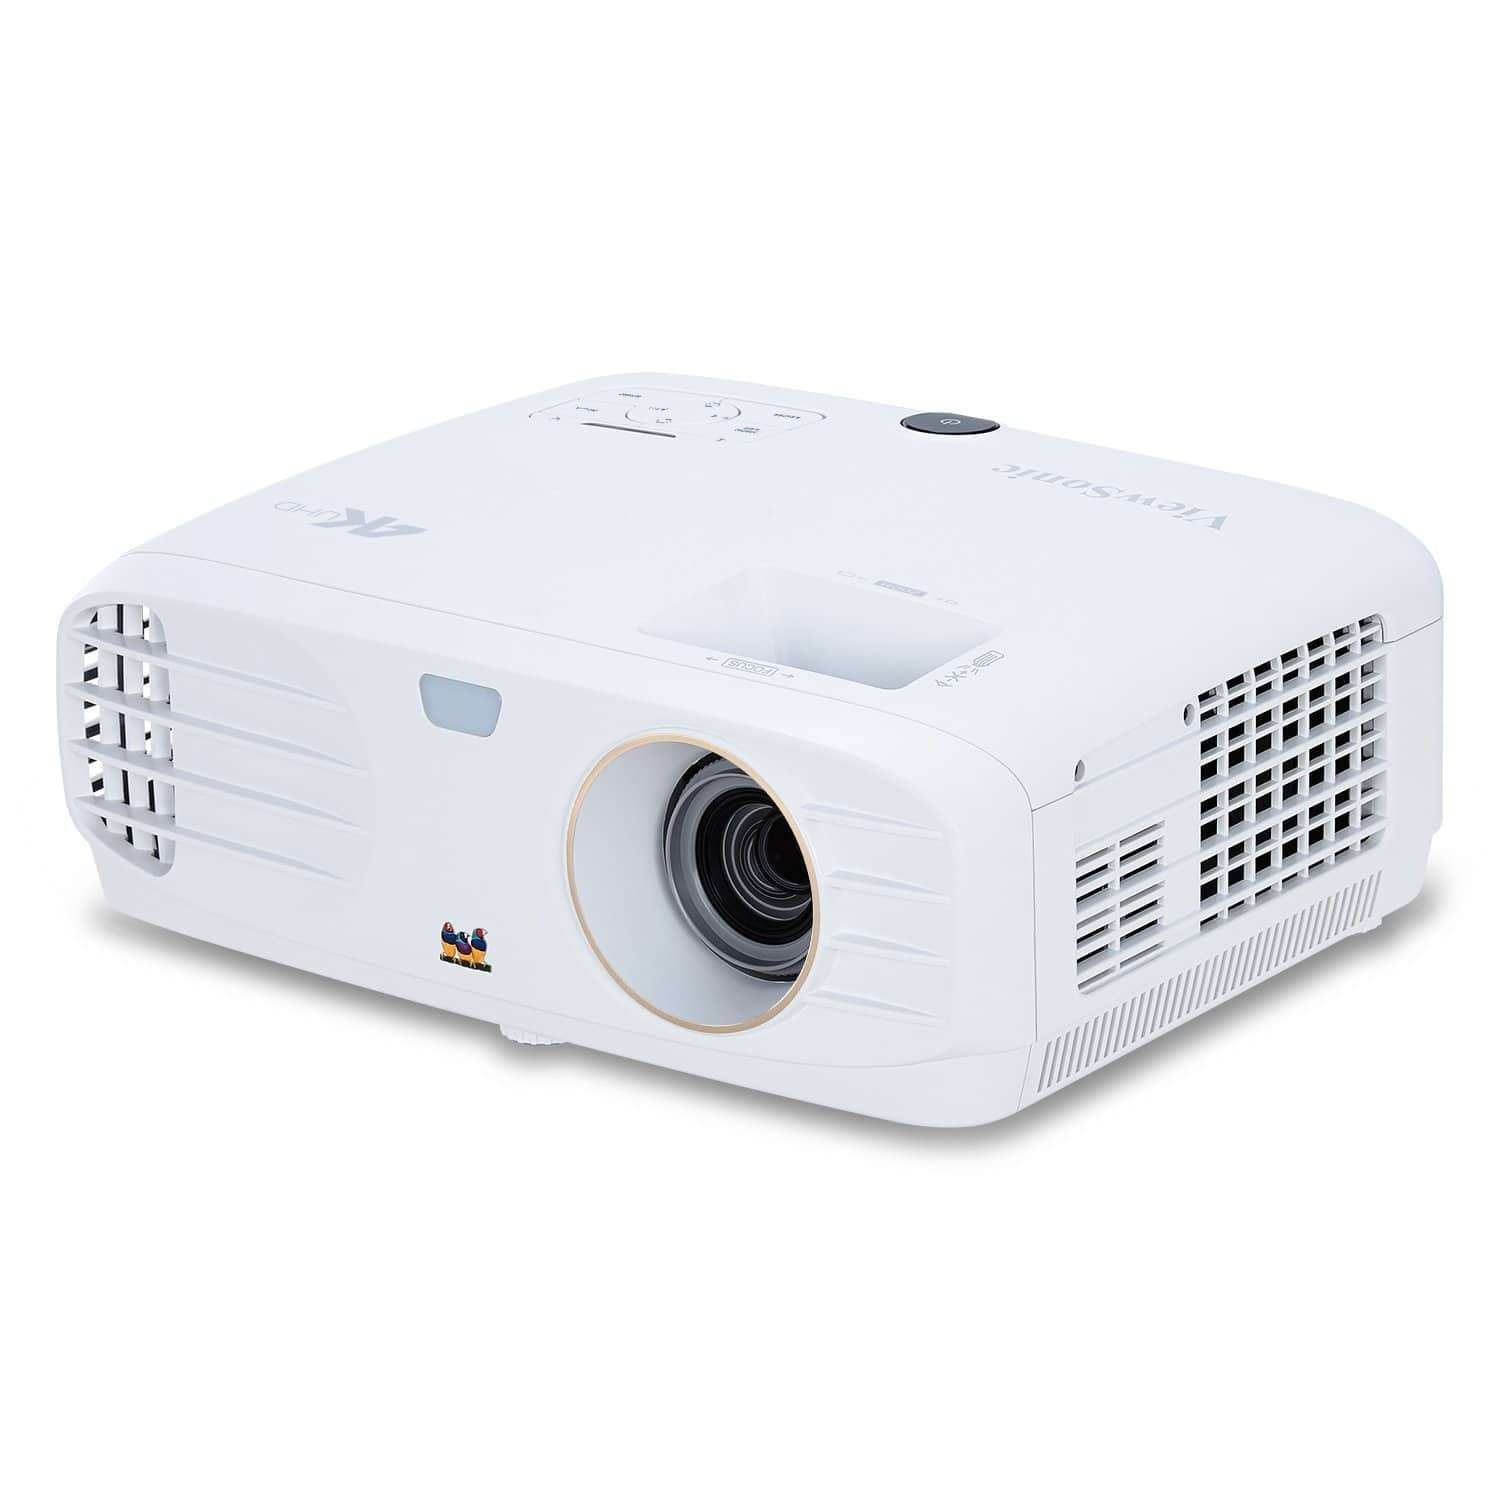 ViewSonic 4K Projector 3500 Lumens HDR Support (PX747-4K) $986.79